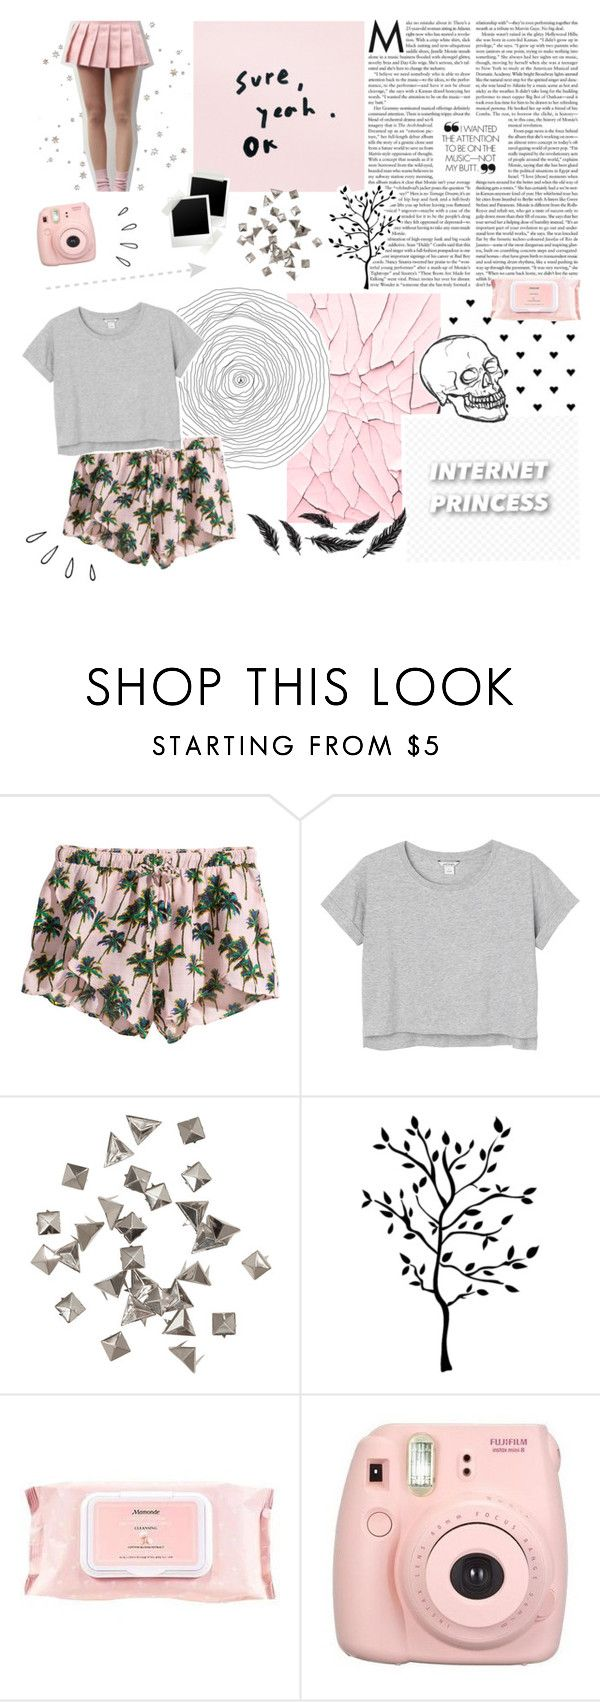 """i'm grown now"" by lucidmoon ❤ liked on Polyvore featuring H&M, Monki, RoomMates Decor, Mamonde, Fujifilm and Old Navy"